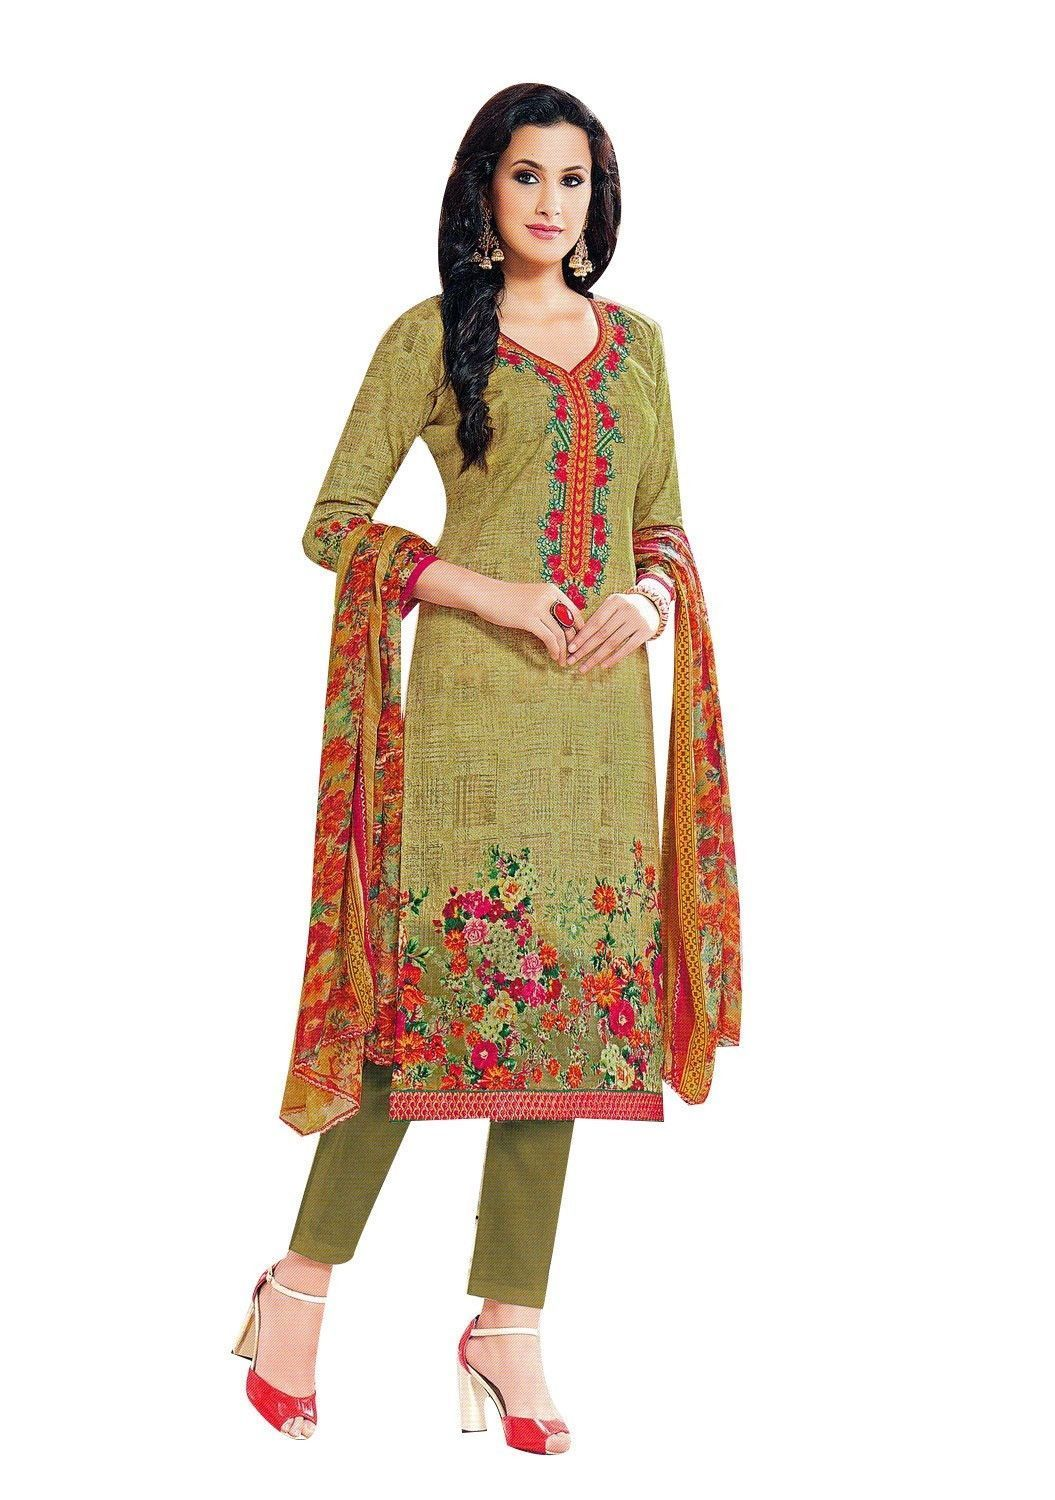 f9e06dd628 Readymade Cotton Embroidered Salwar Kameez Gorgeous Printed Indian Dress  Ready to wear Salwar Suit #LowestPrice #ShopNow #NewStuff #FreeShipping  #SalwarSuit ...